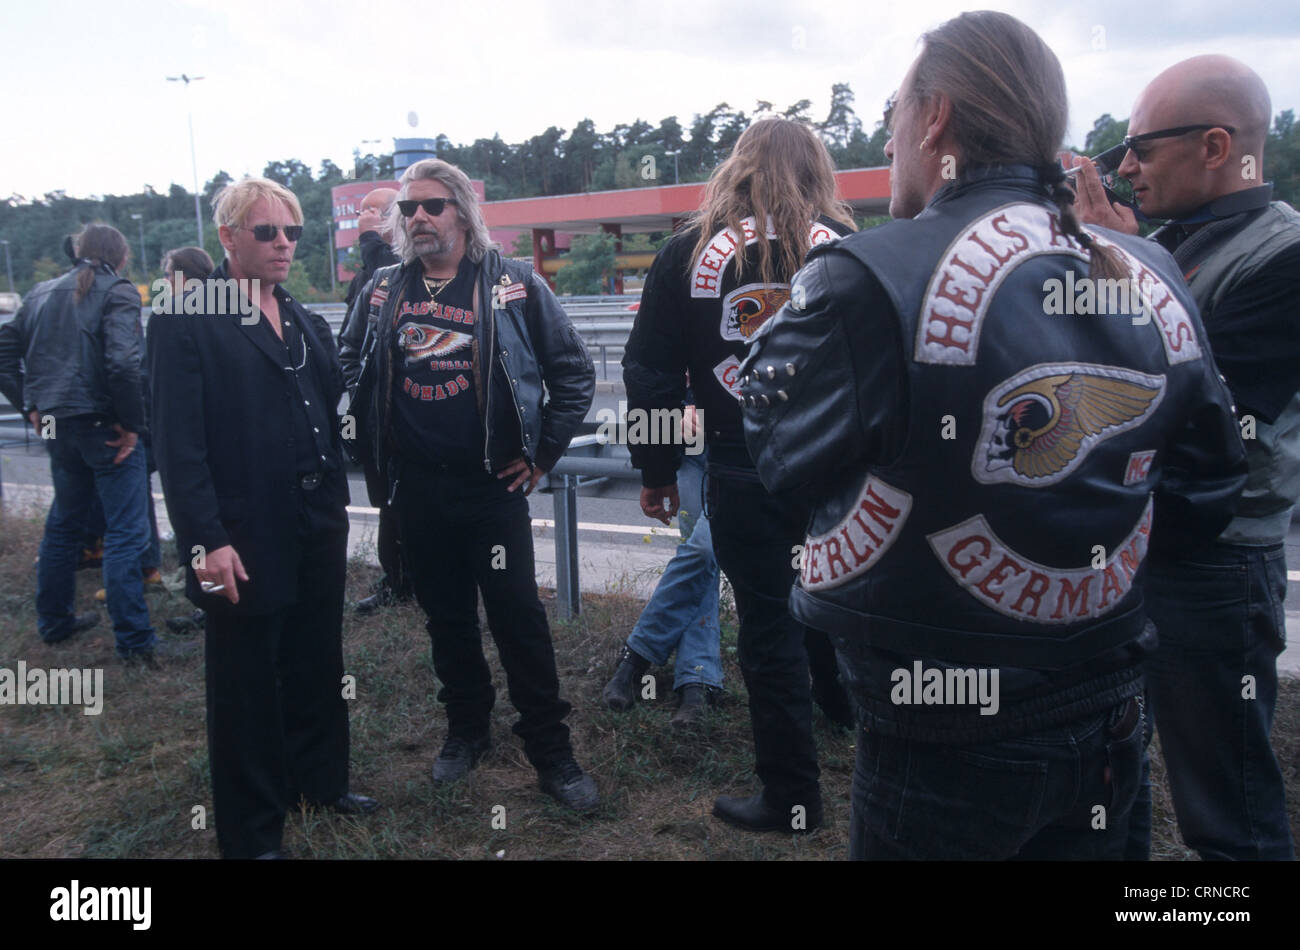 StockfotoBild49028880 Alamy Angels Berlin In Hells KlJTF13c